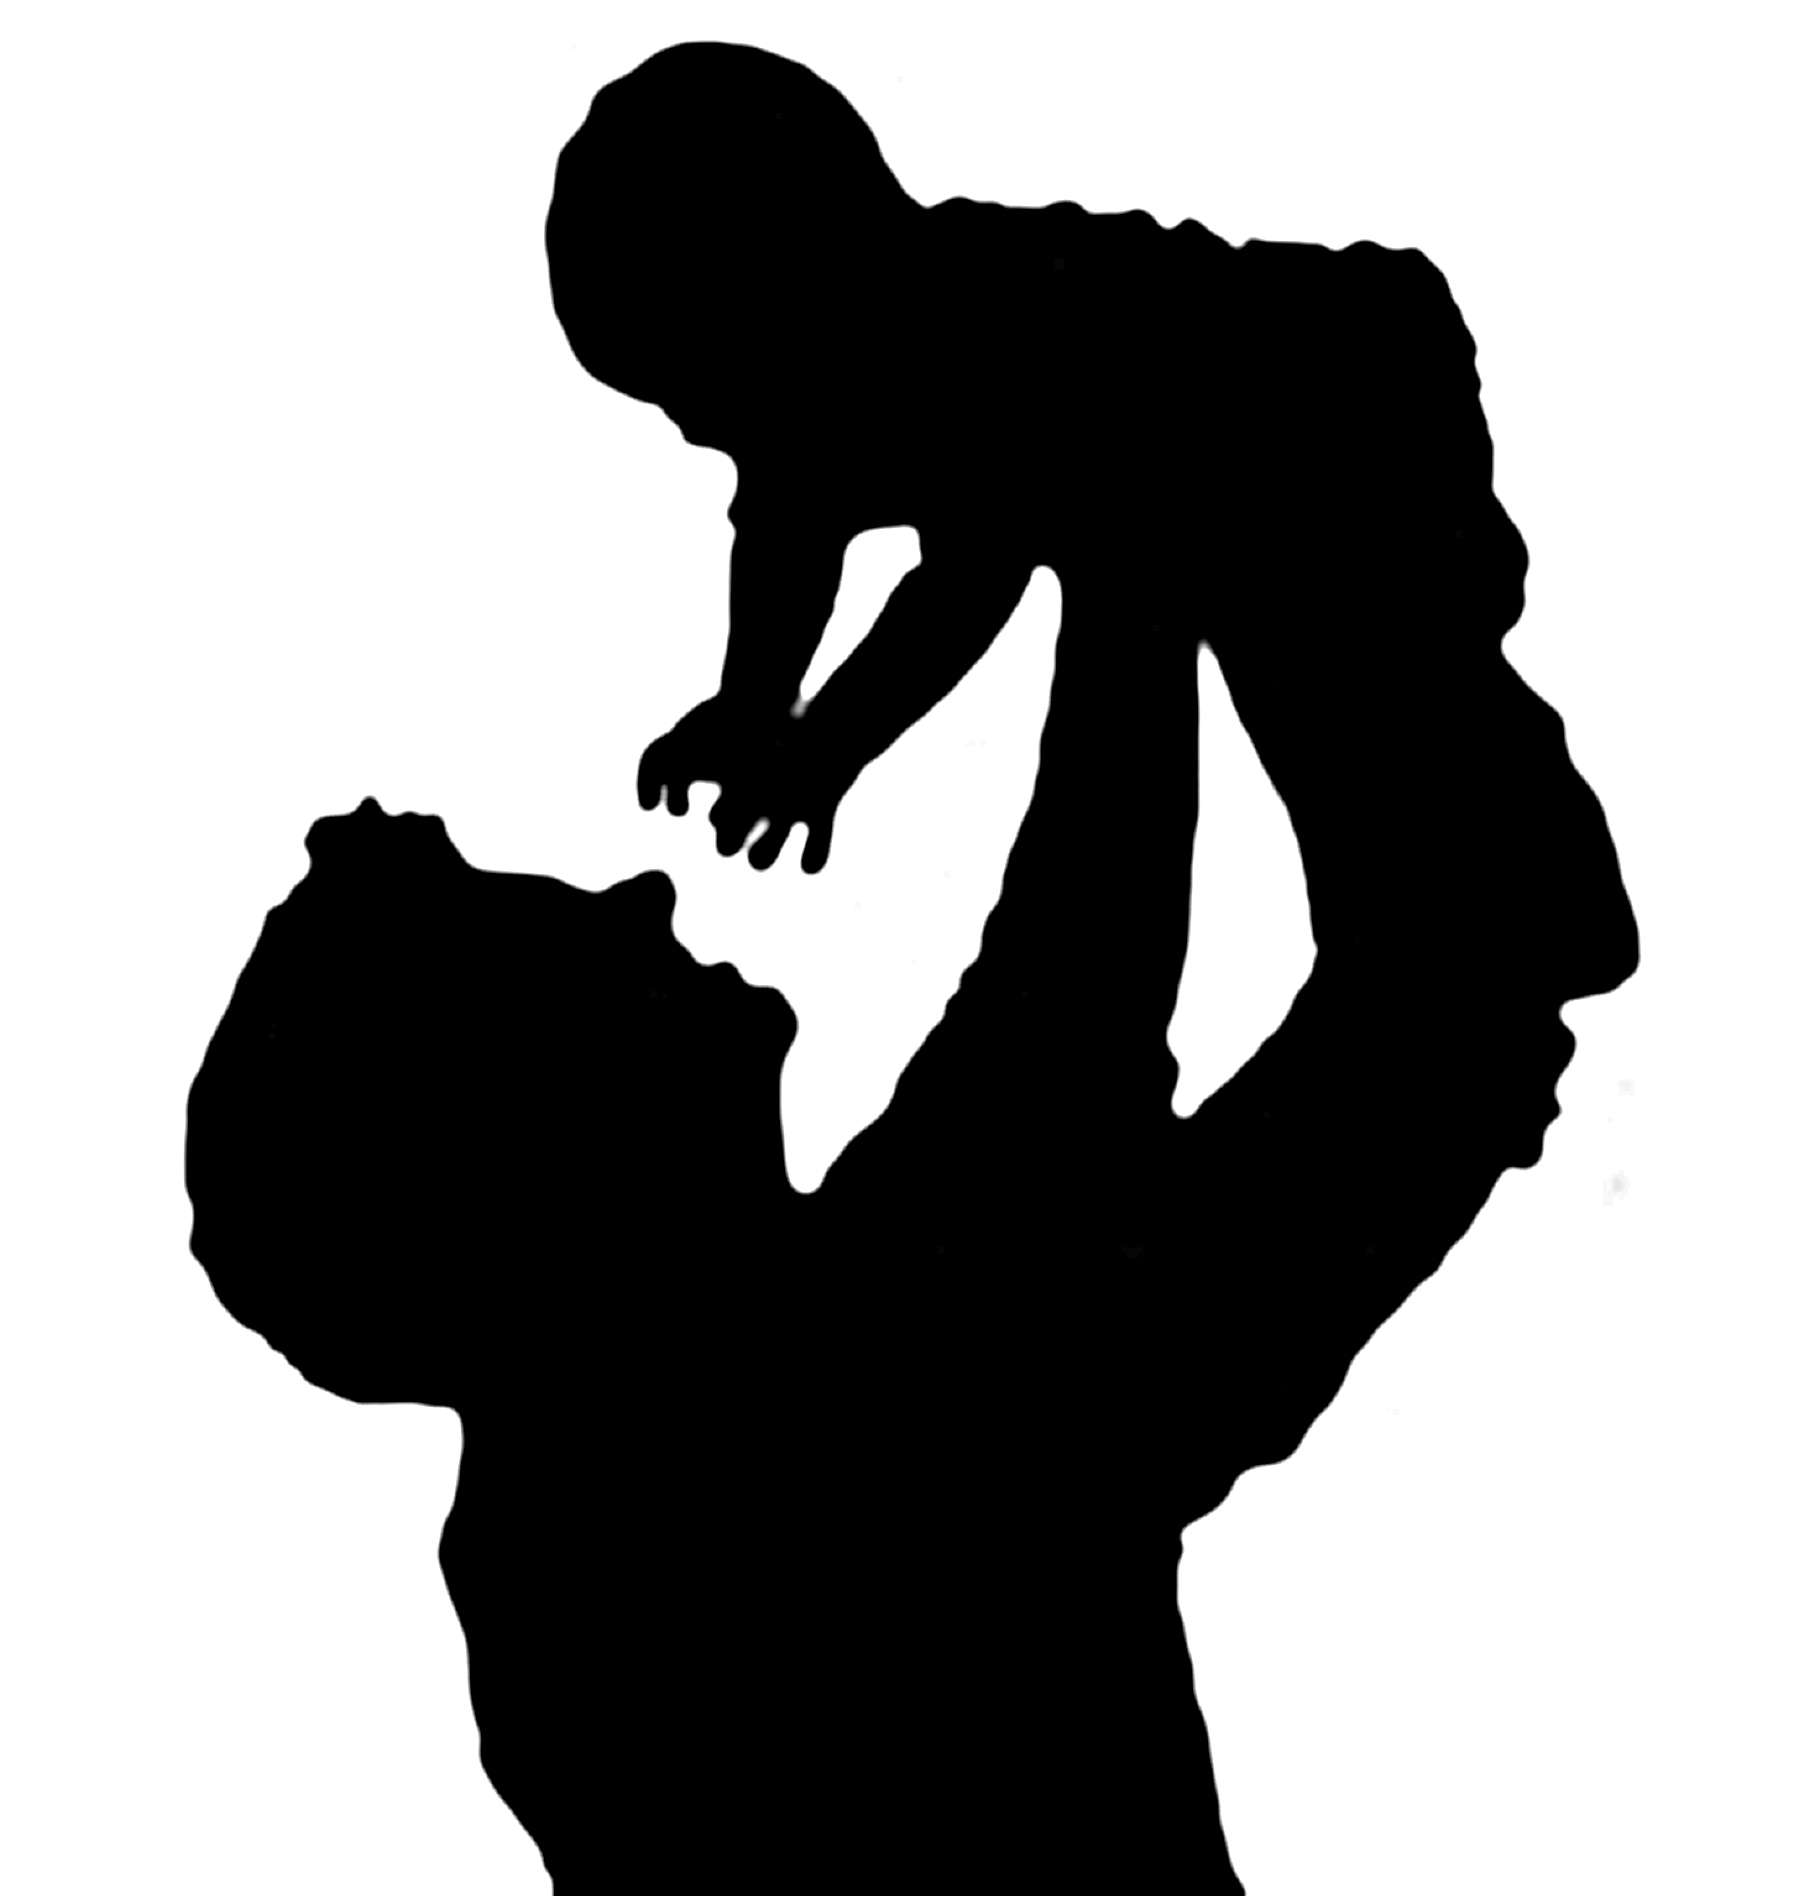 father silhouette custom silhouette print father and children perfect for father silhouette